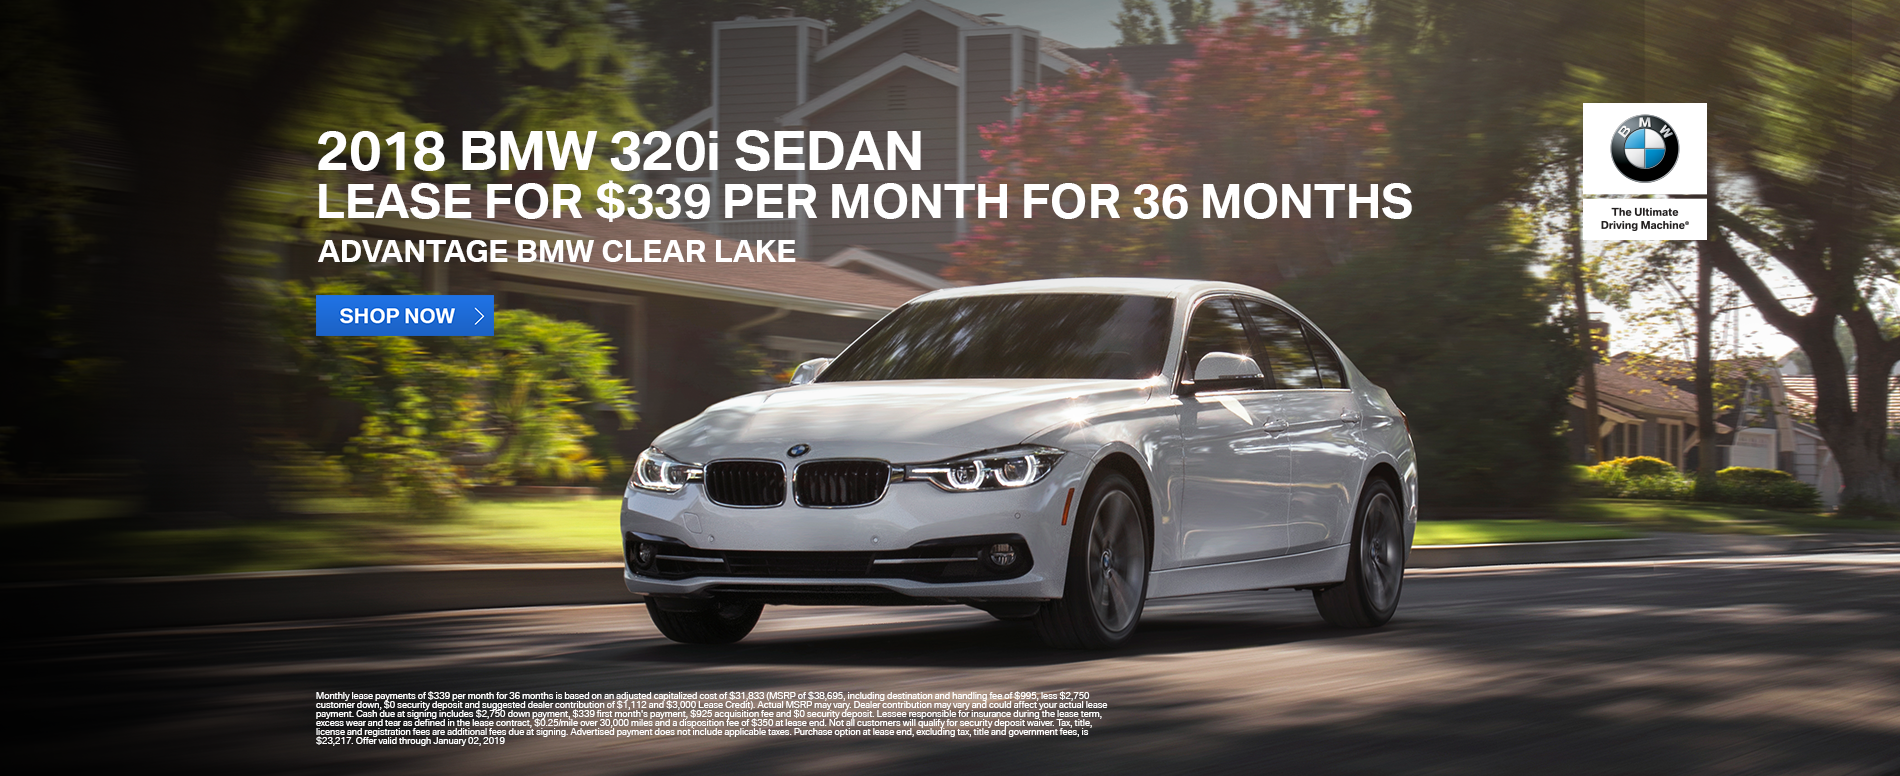 lease-2018-320i-sedan-for-339-per-month-clearlake-bmw